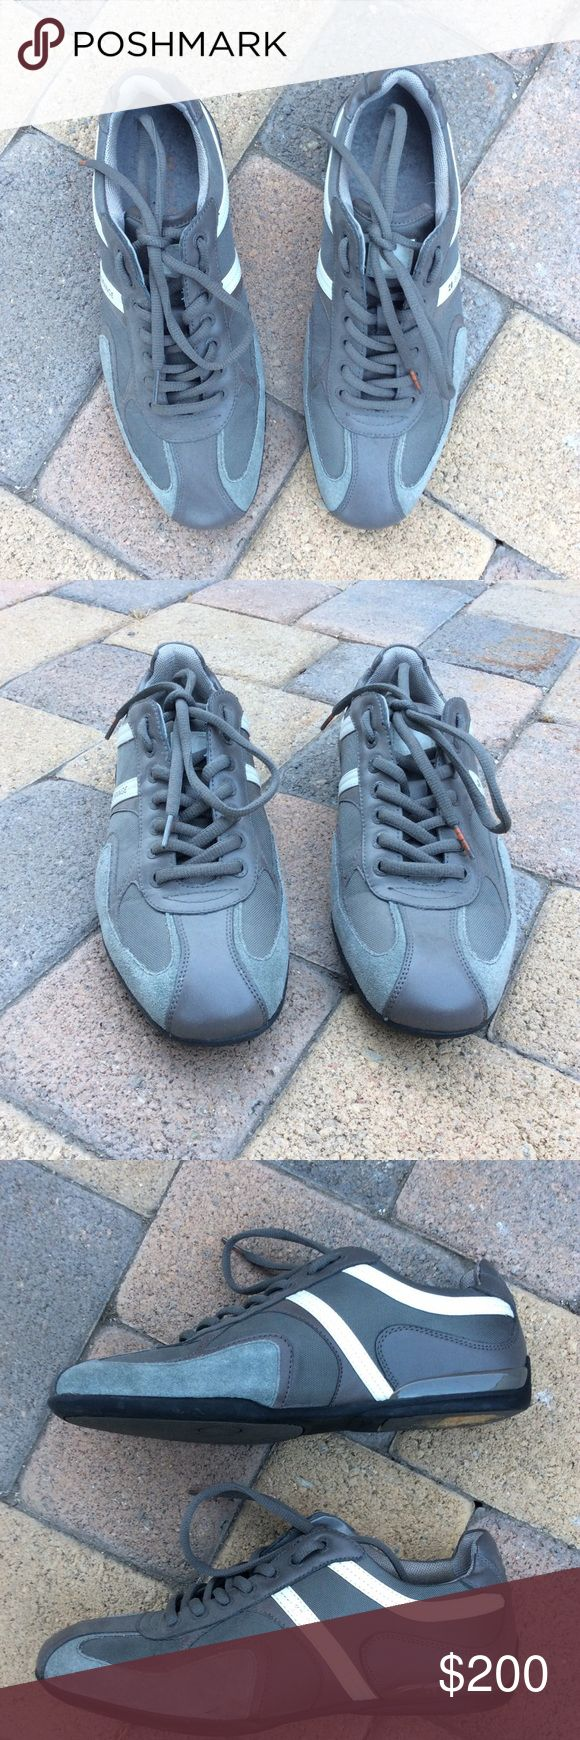 Orange boss shoes Boss orange shoes by Hugo boss. My uncle paid full price. These are made with textile coated leather, try are a nice cool muted grey, teal color, with some white strips on them. Only worn once. European size 40 BOSS ORANGE Shoes Sneakers